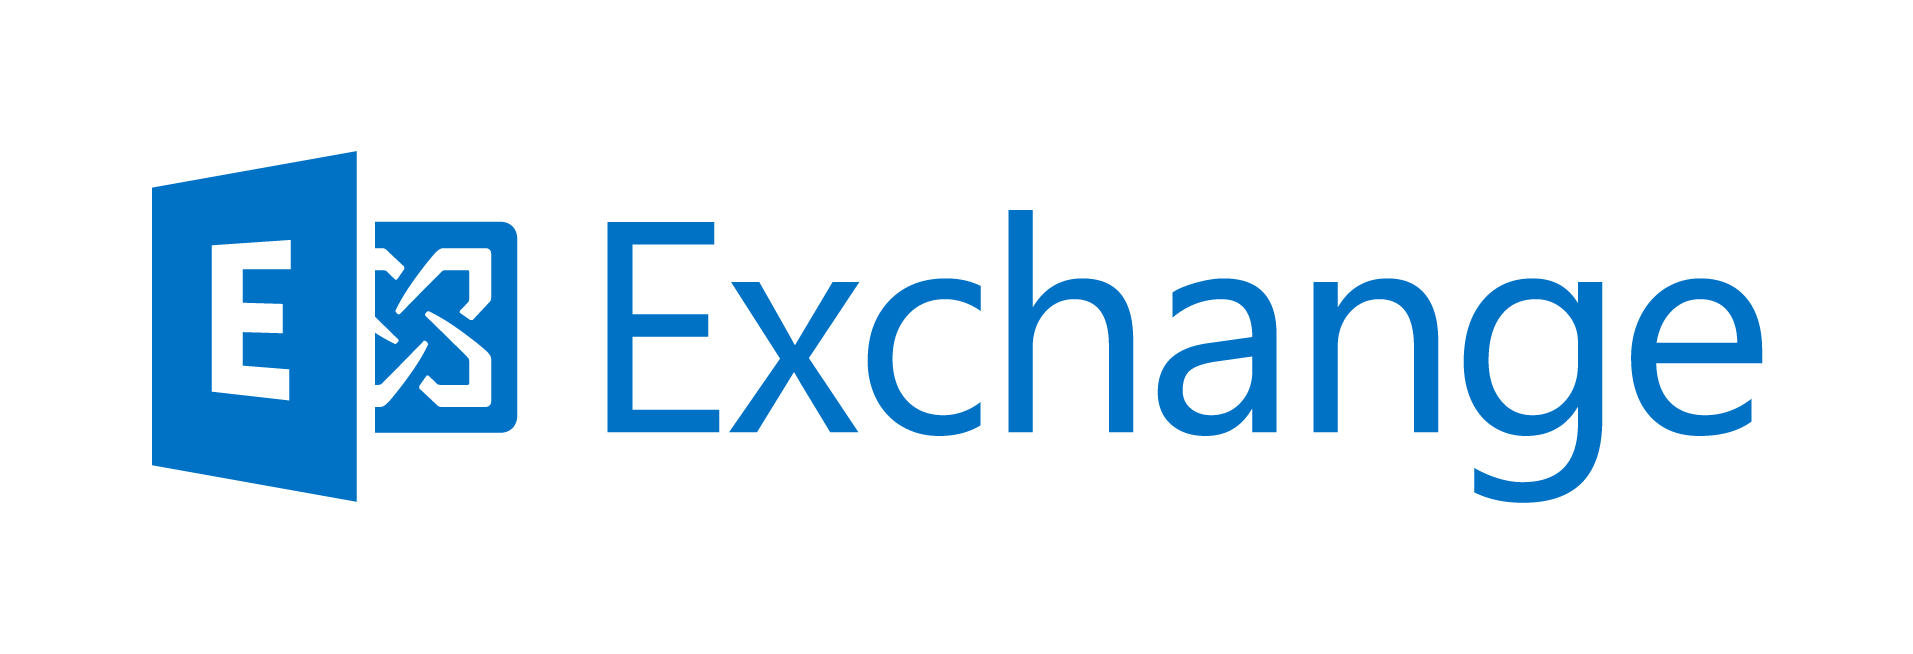 Microsoft Exchange - OU picker is empty when creating new